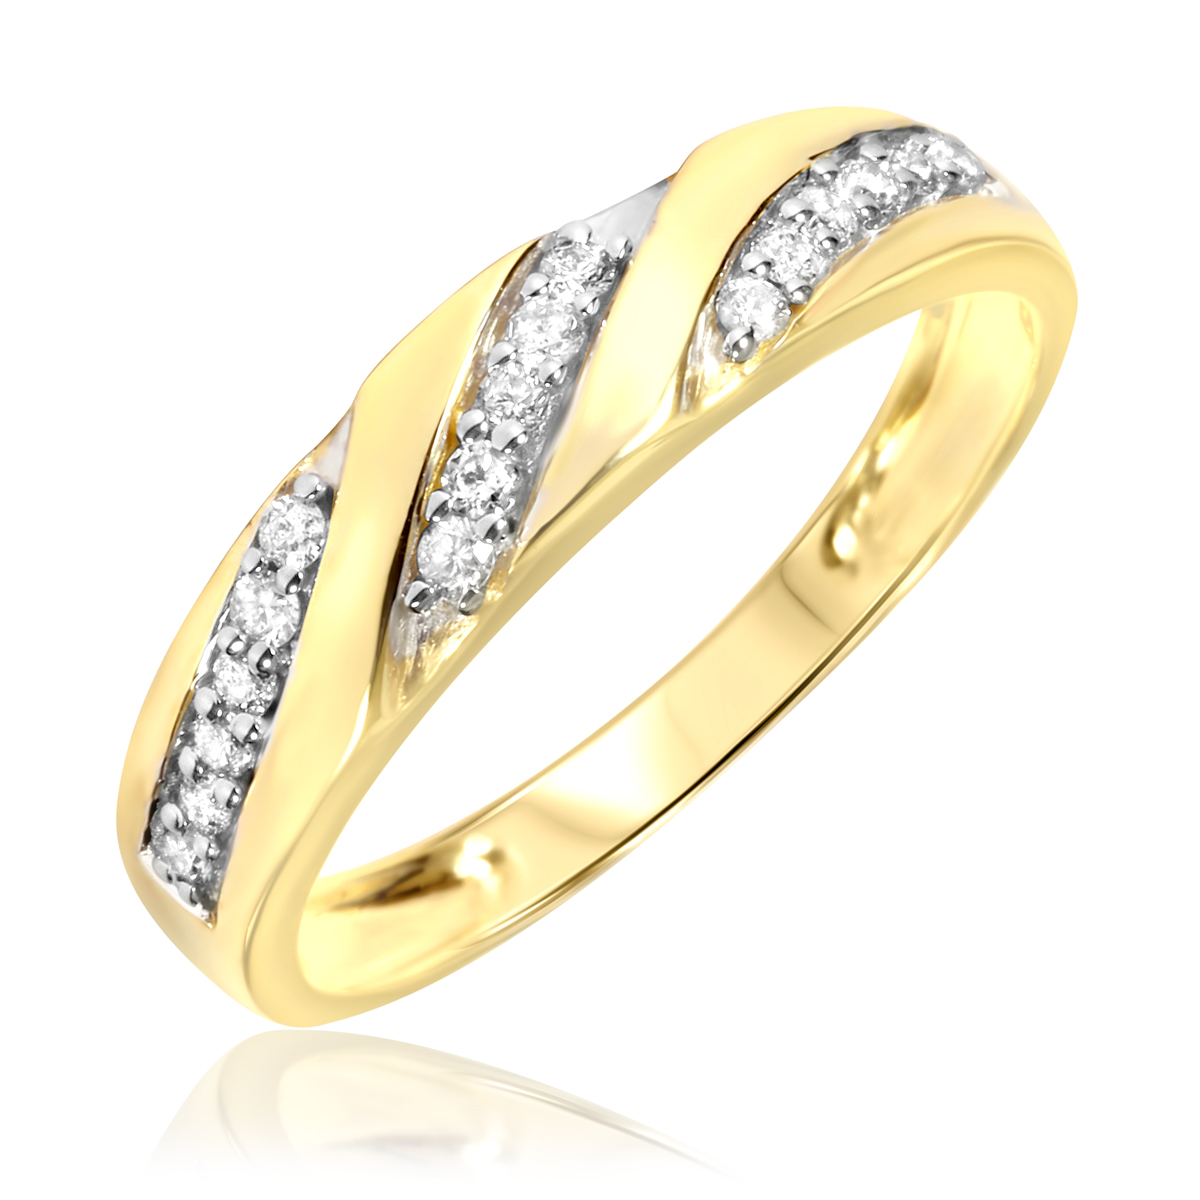 top best wedding bands rings mens women diamond sets titanium gold cheap black white rose wedding rings men wedding bands wedding rings mens wedding bands mens wedding rings wedding rings